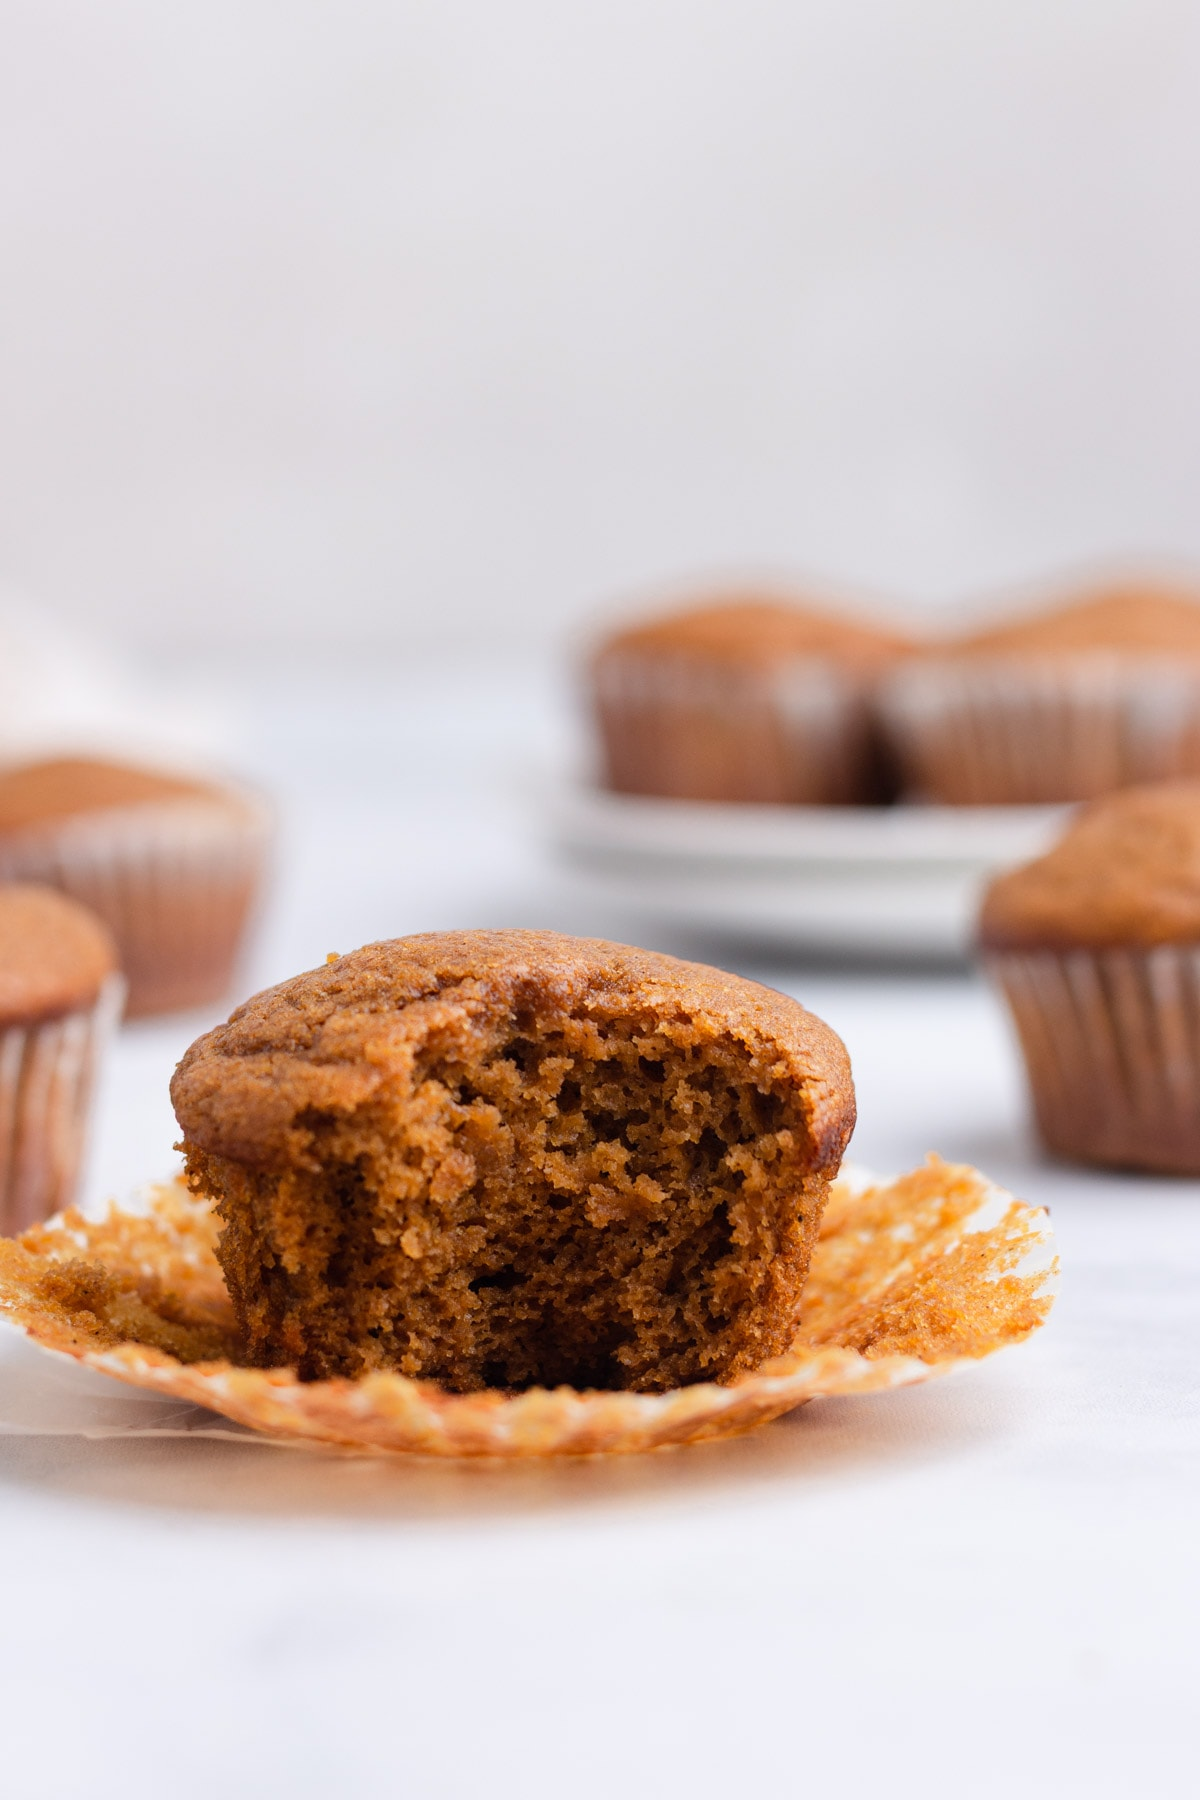 A pumpkin protein muffin with the paper pulled down and a bite taken out of it with more muffins in the background.